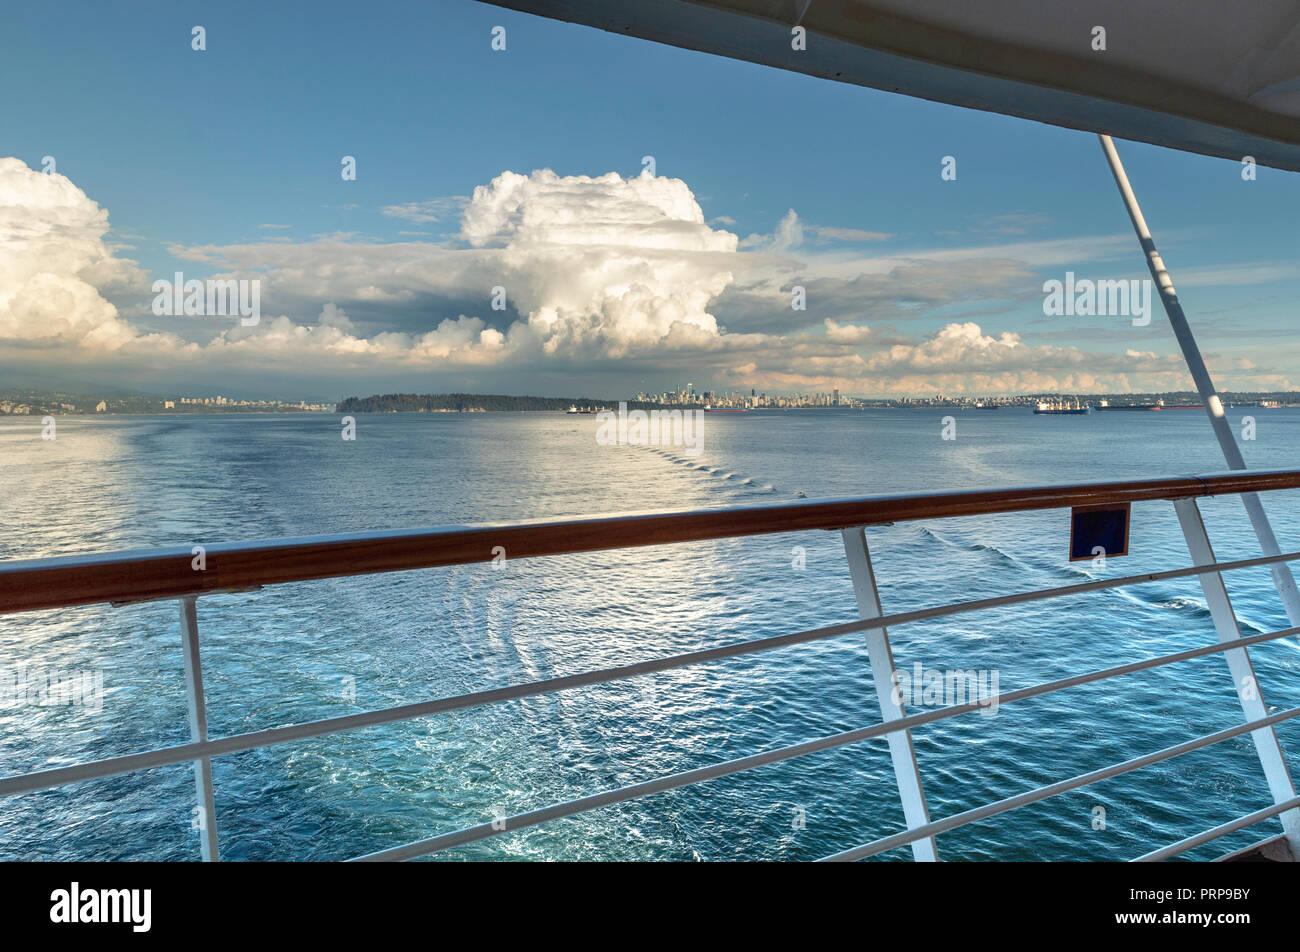 View of English Bay Stanley Park and Burrard Inlet, Vancouver, British Columbia, Canada from rear deck of cruise ship on a clear sunny day. - Stock Image